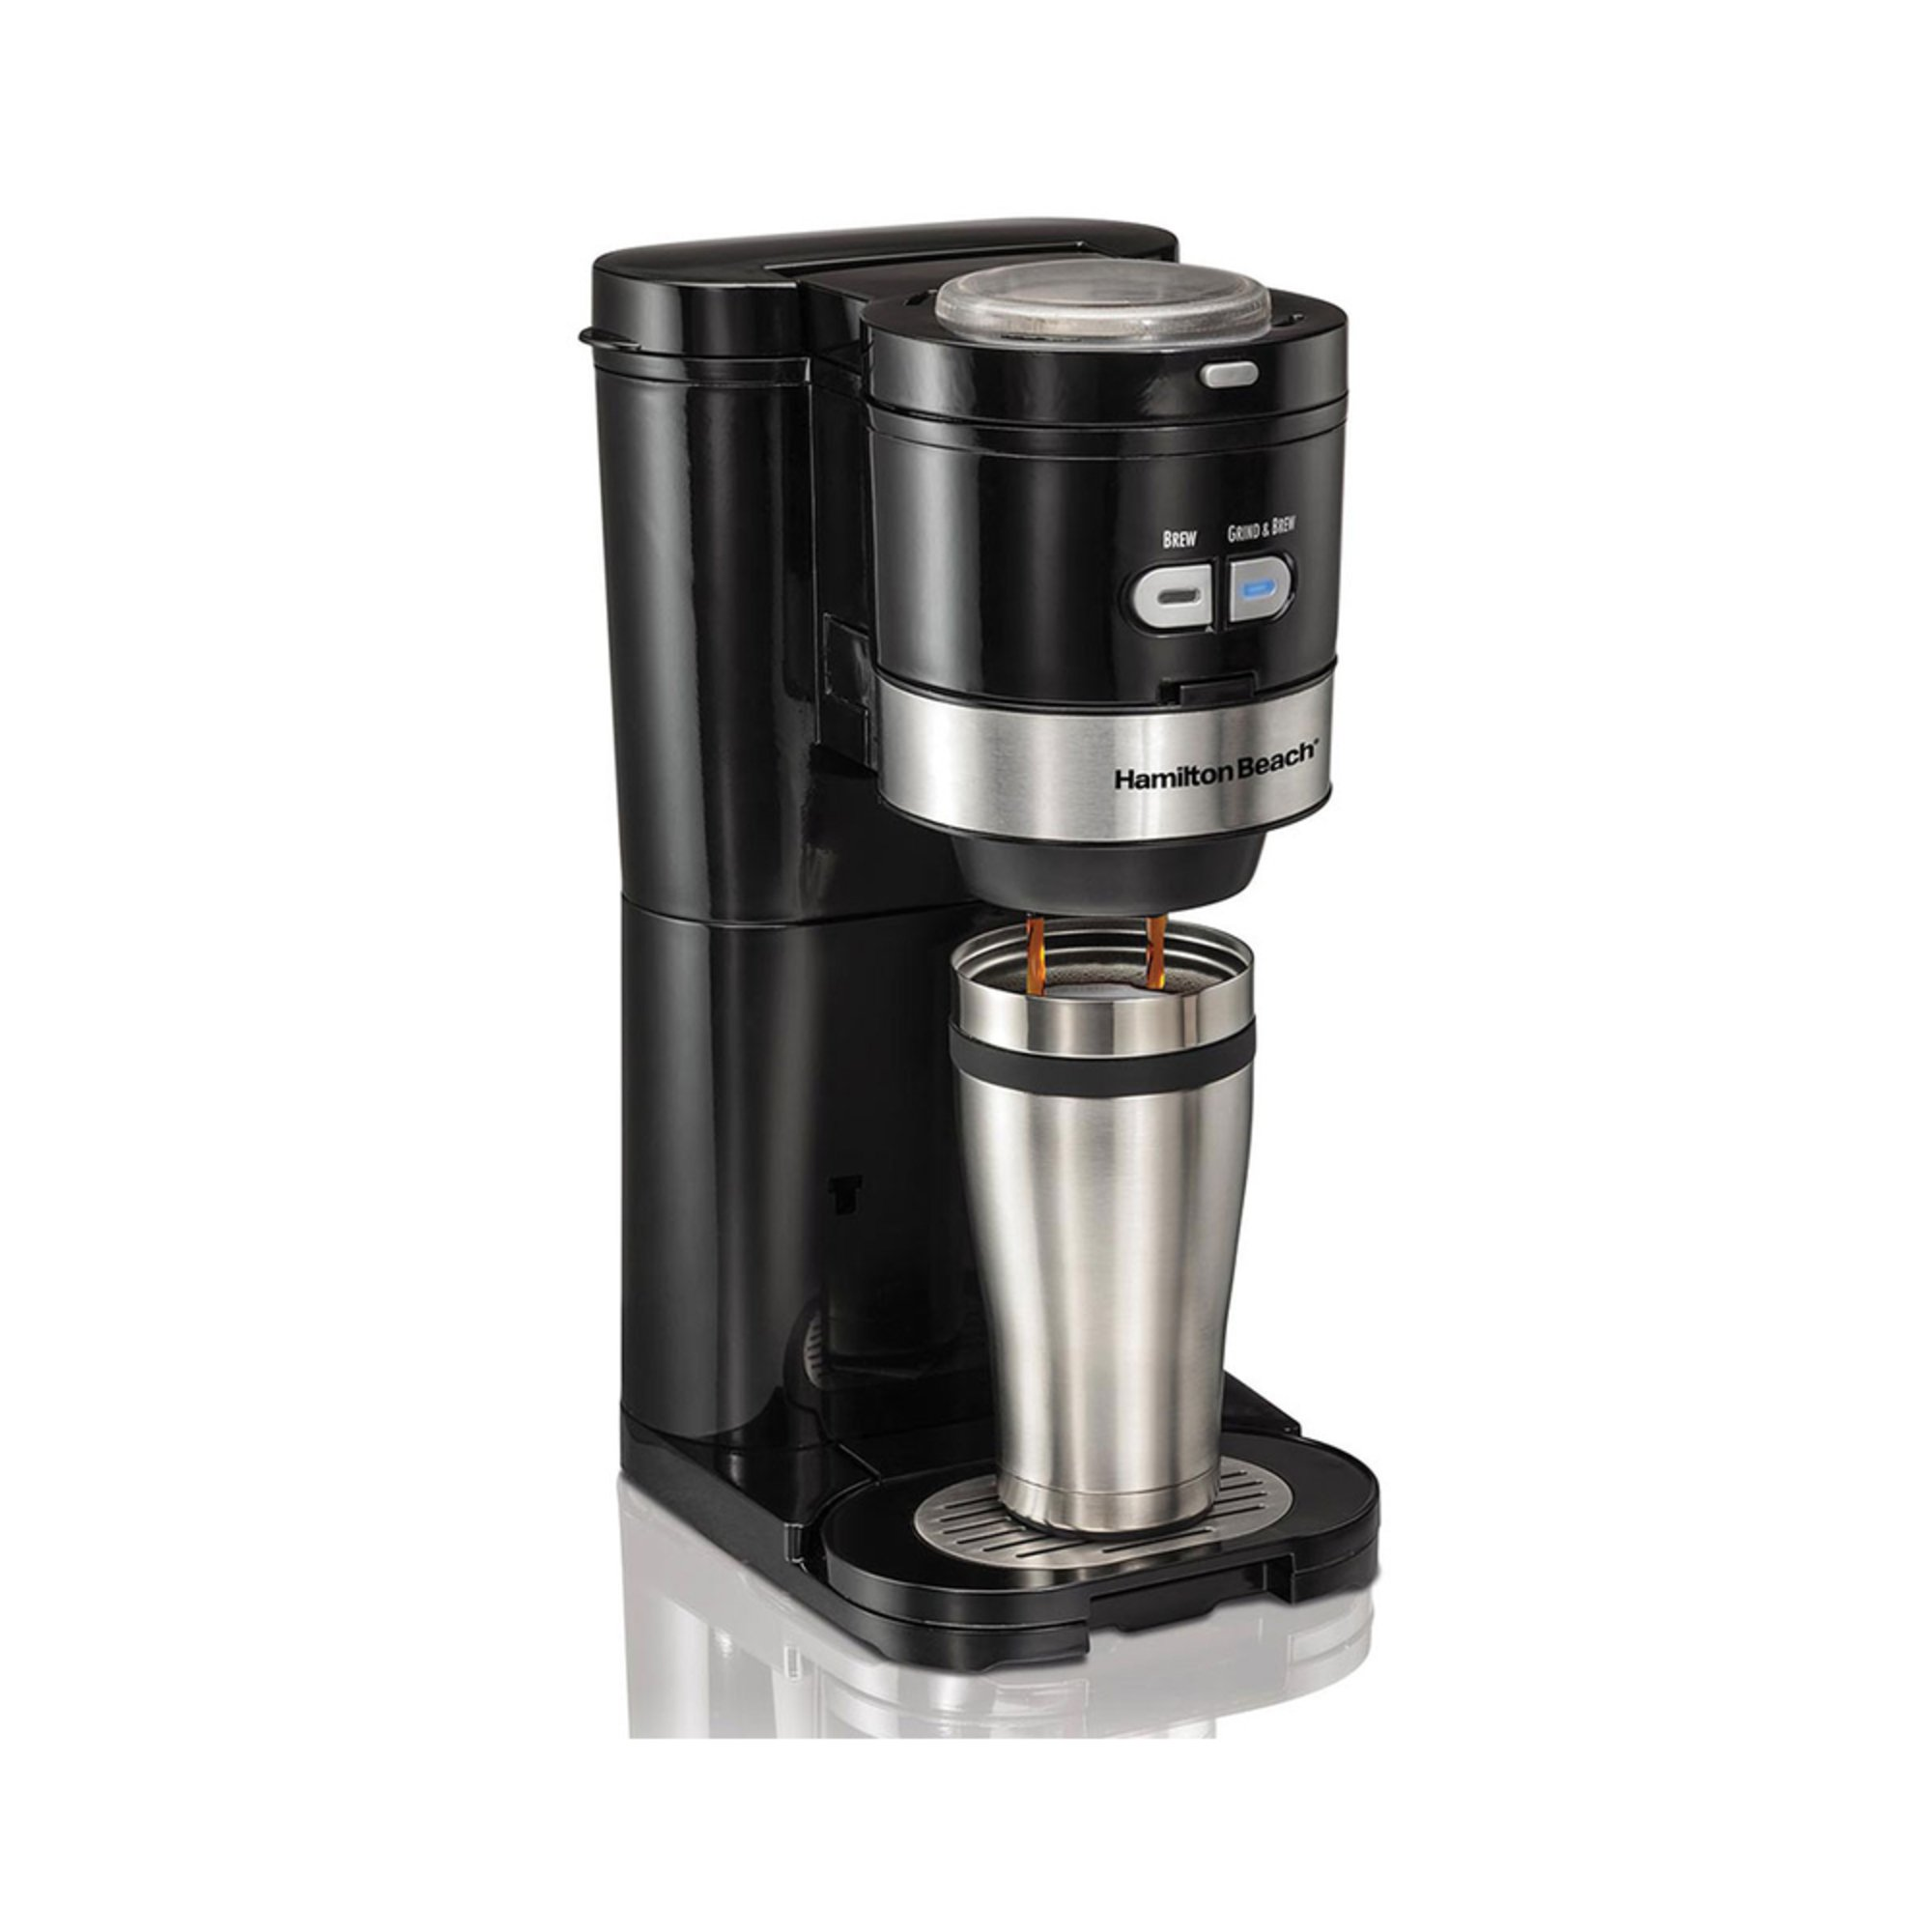 Hamilton Beach Grind And Brew Single Serve Coffee Maker 49989